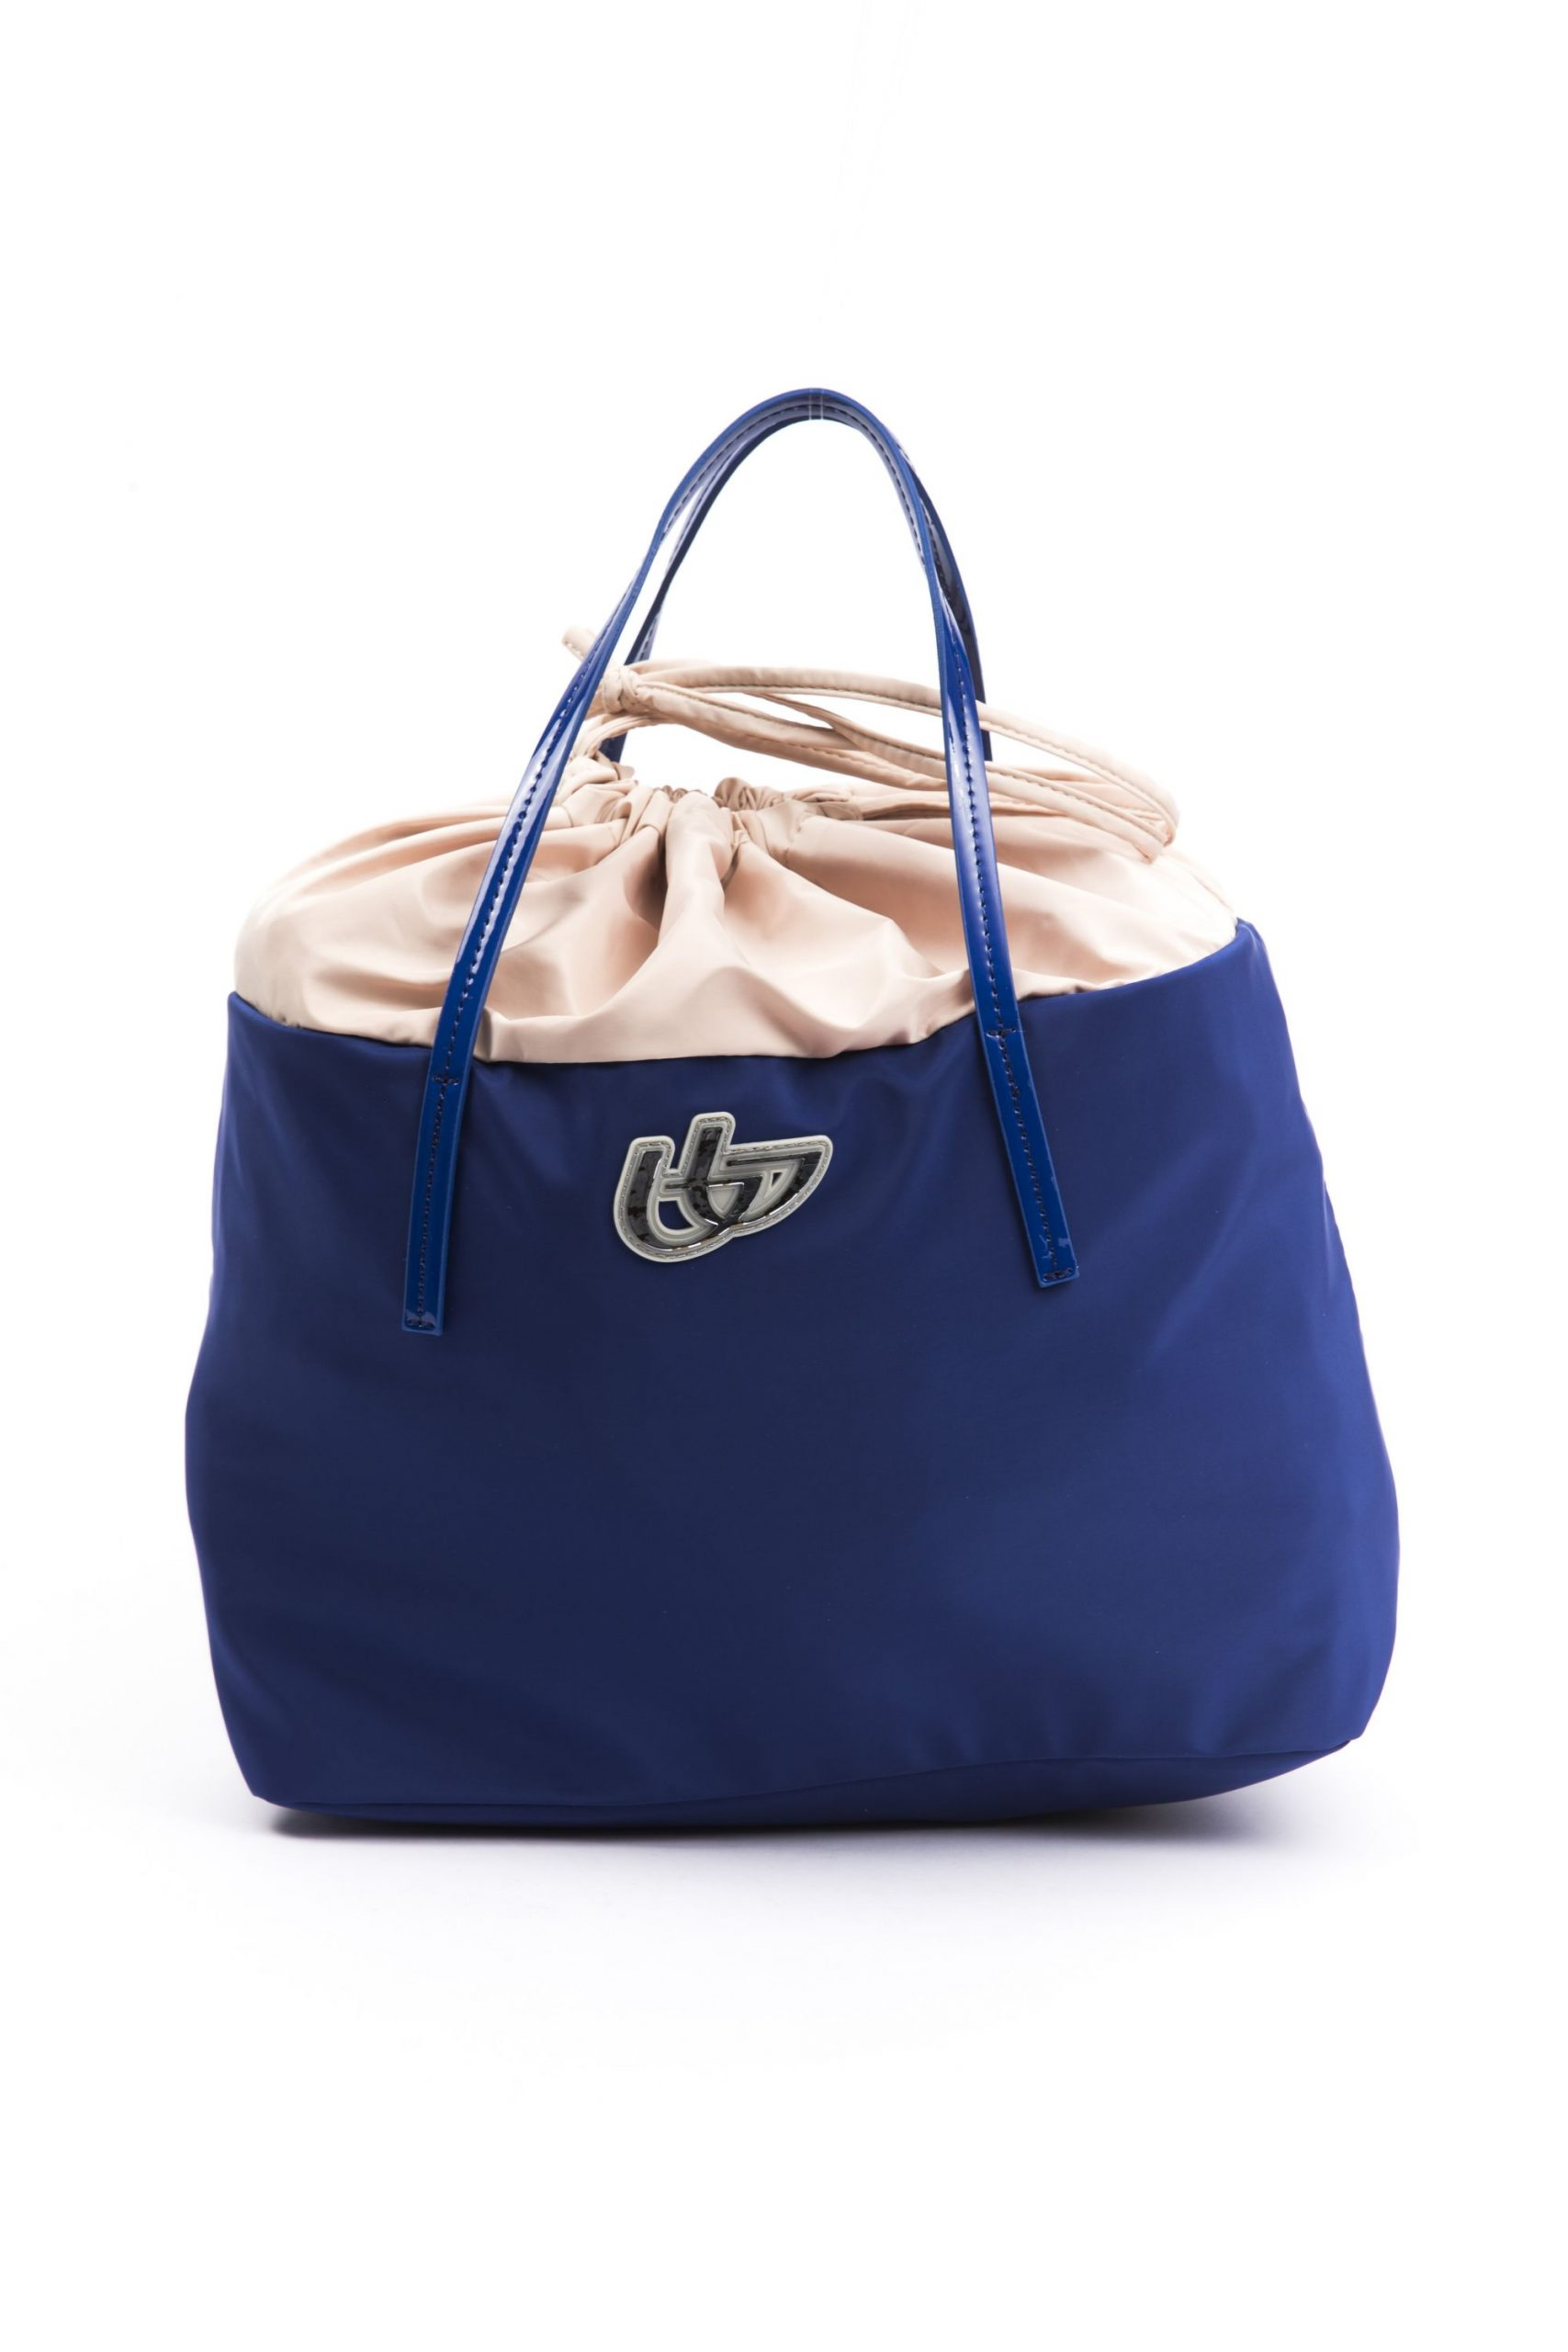 Byblos Women's Shopping Bag Blue BY665667